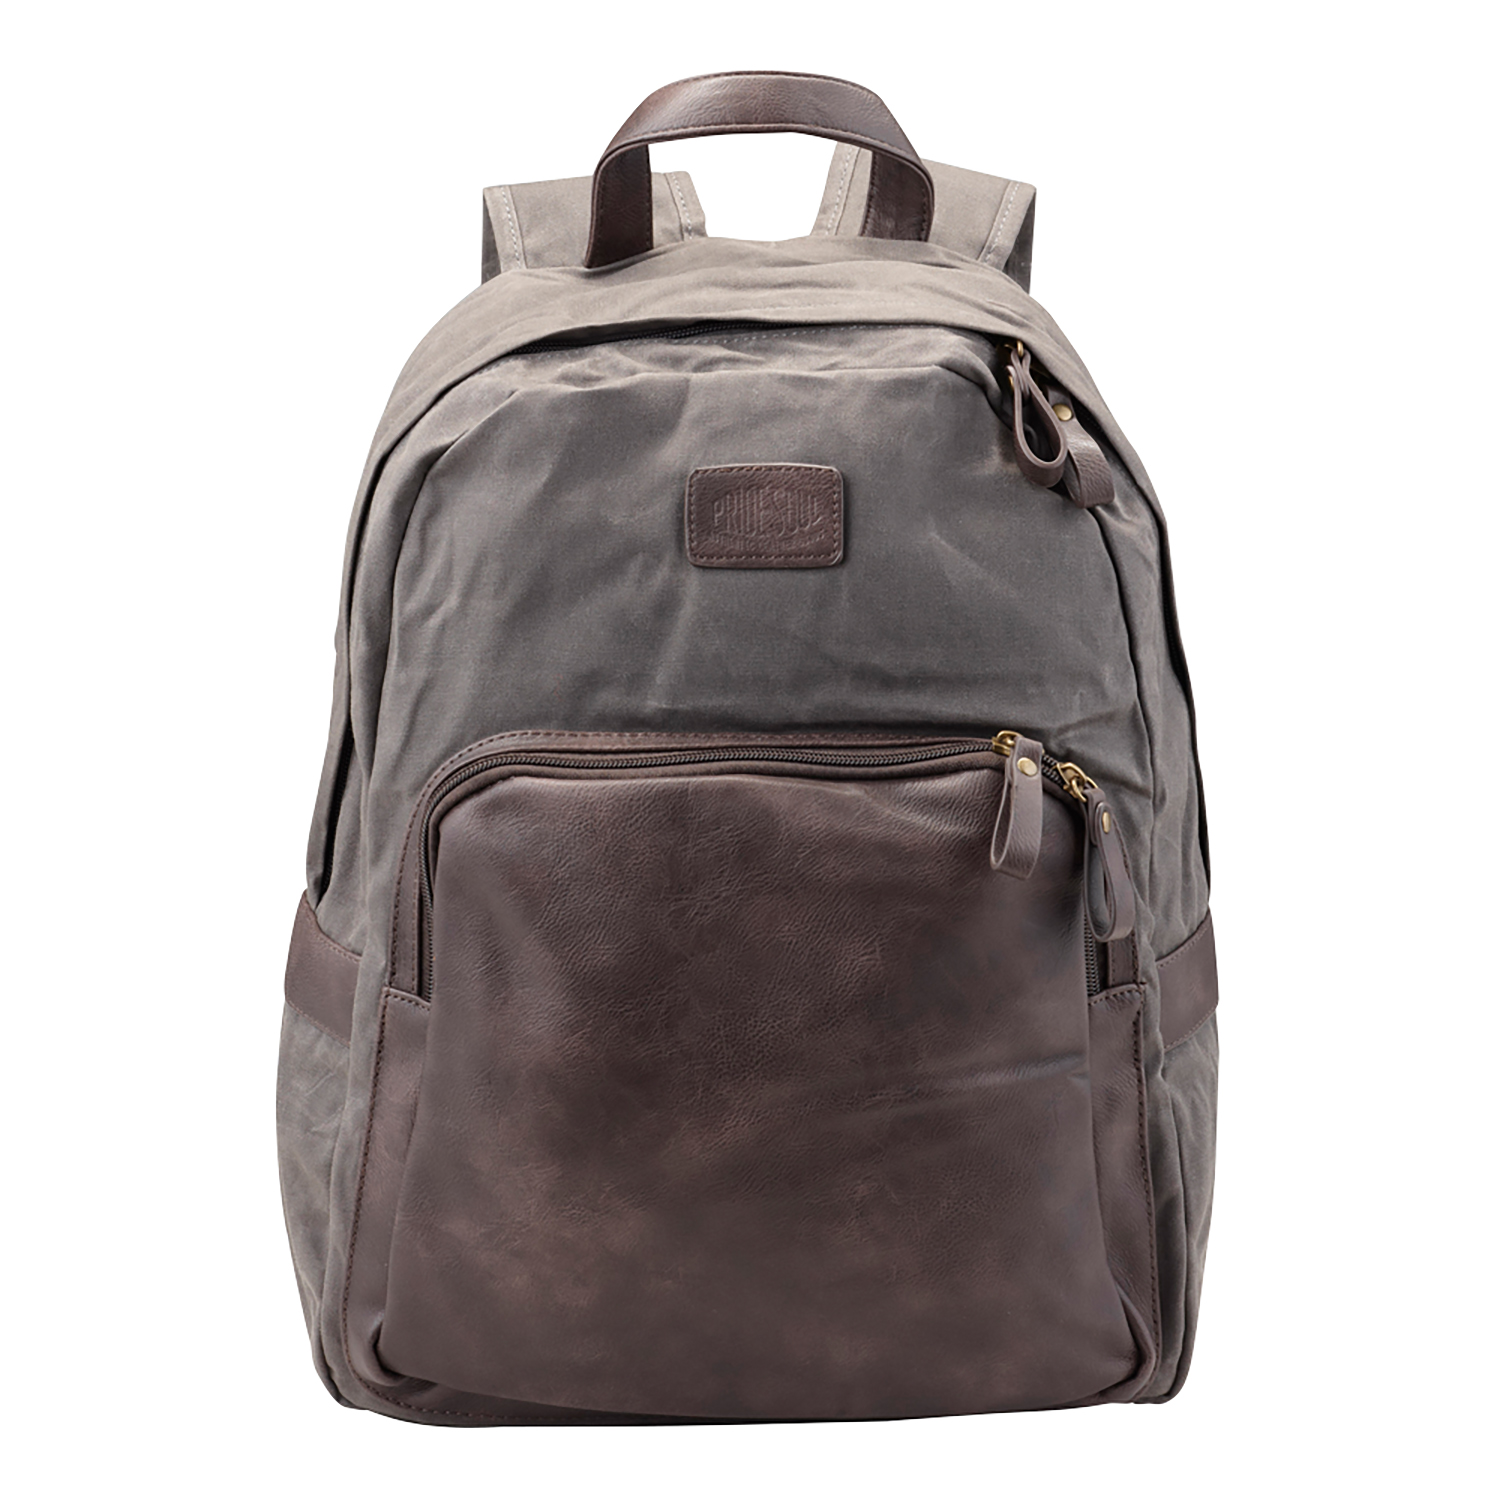 Image for Pride and Soul Sensation 15inch Laptop Backpack Grey/Brown Ref 47301